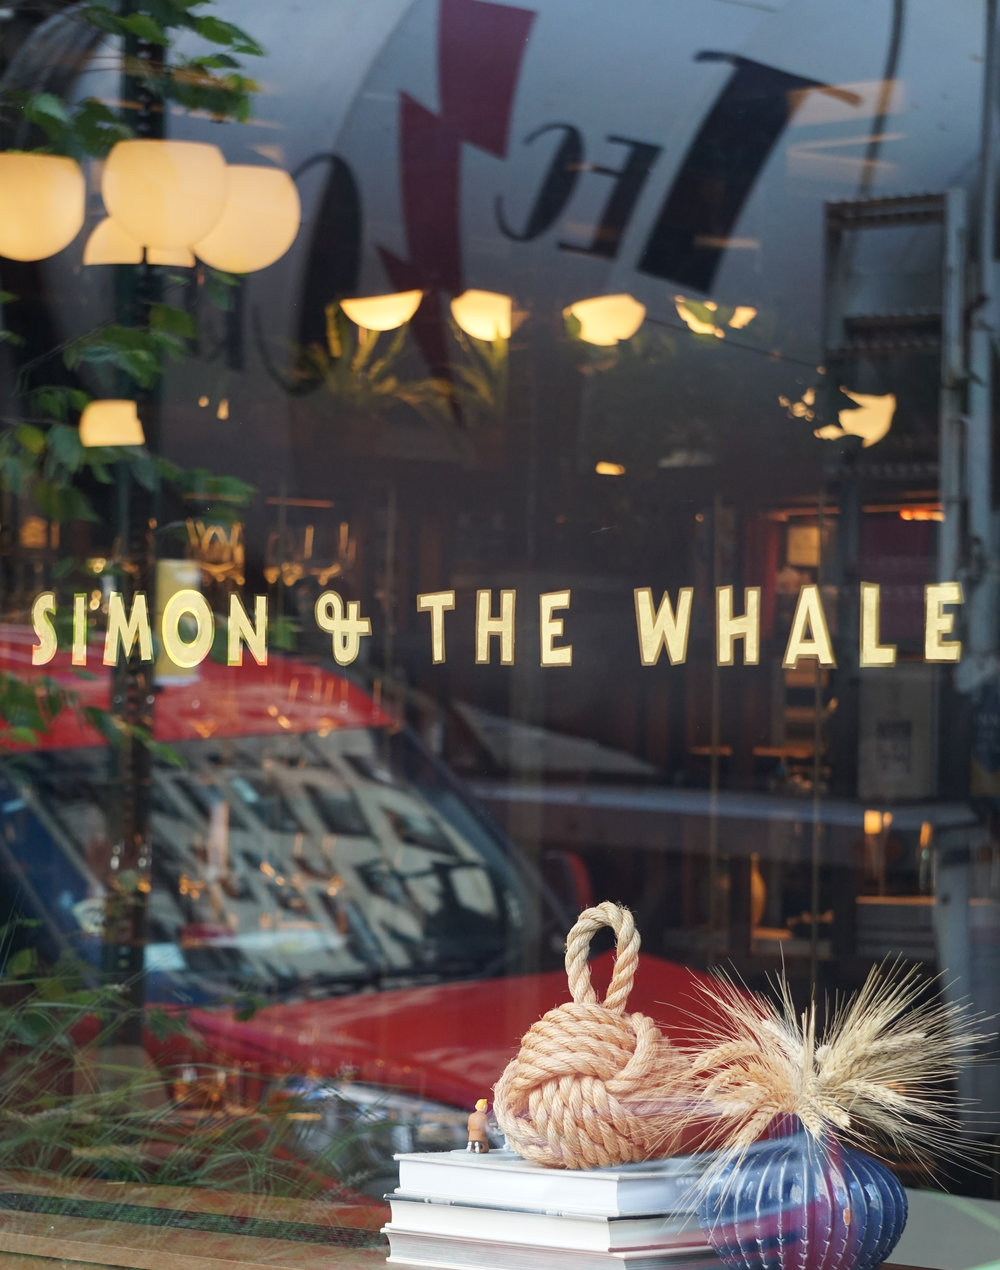 simonandthewhale_resized_03.jpg